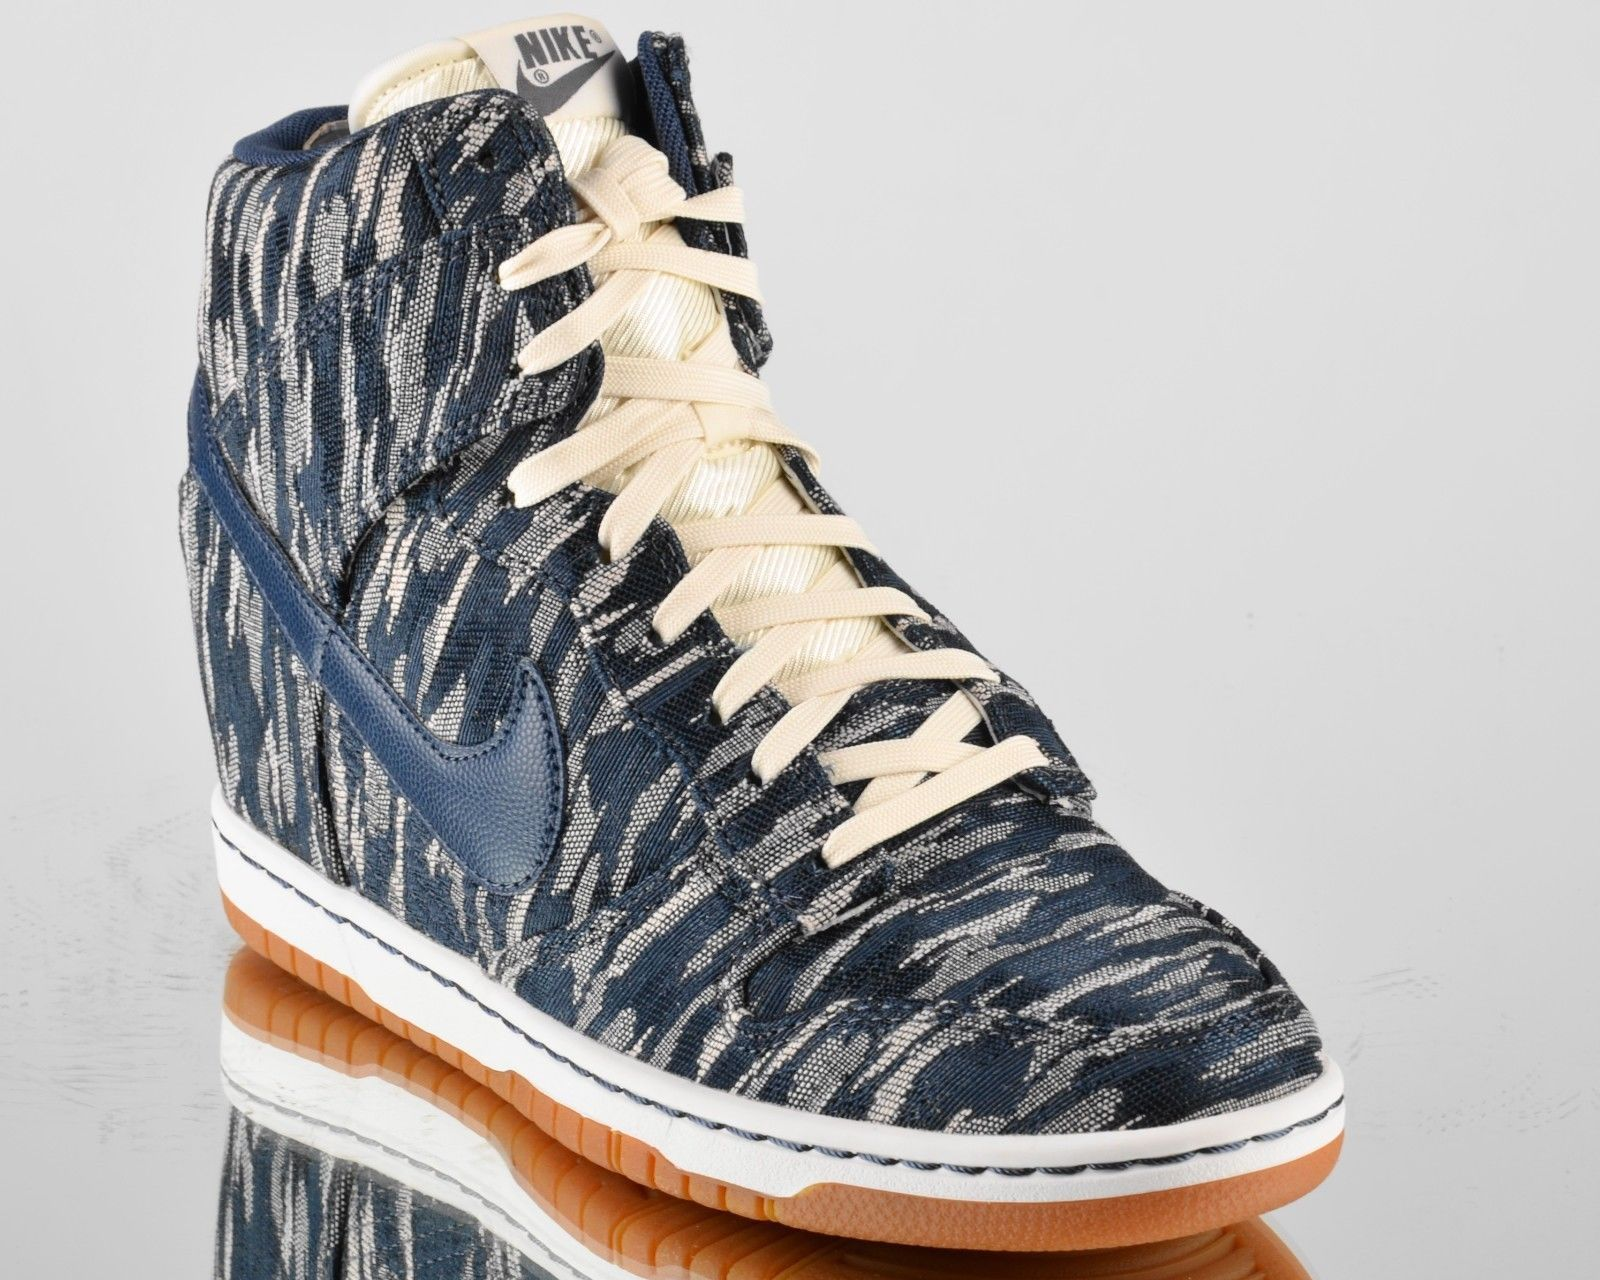 Size 9.5 Women Nike Dunk Sky High Wedge PRM Premium 585560 100 Sail Armory  Navy